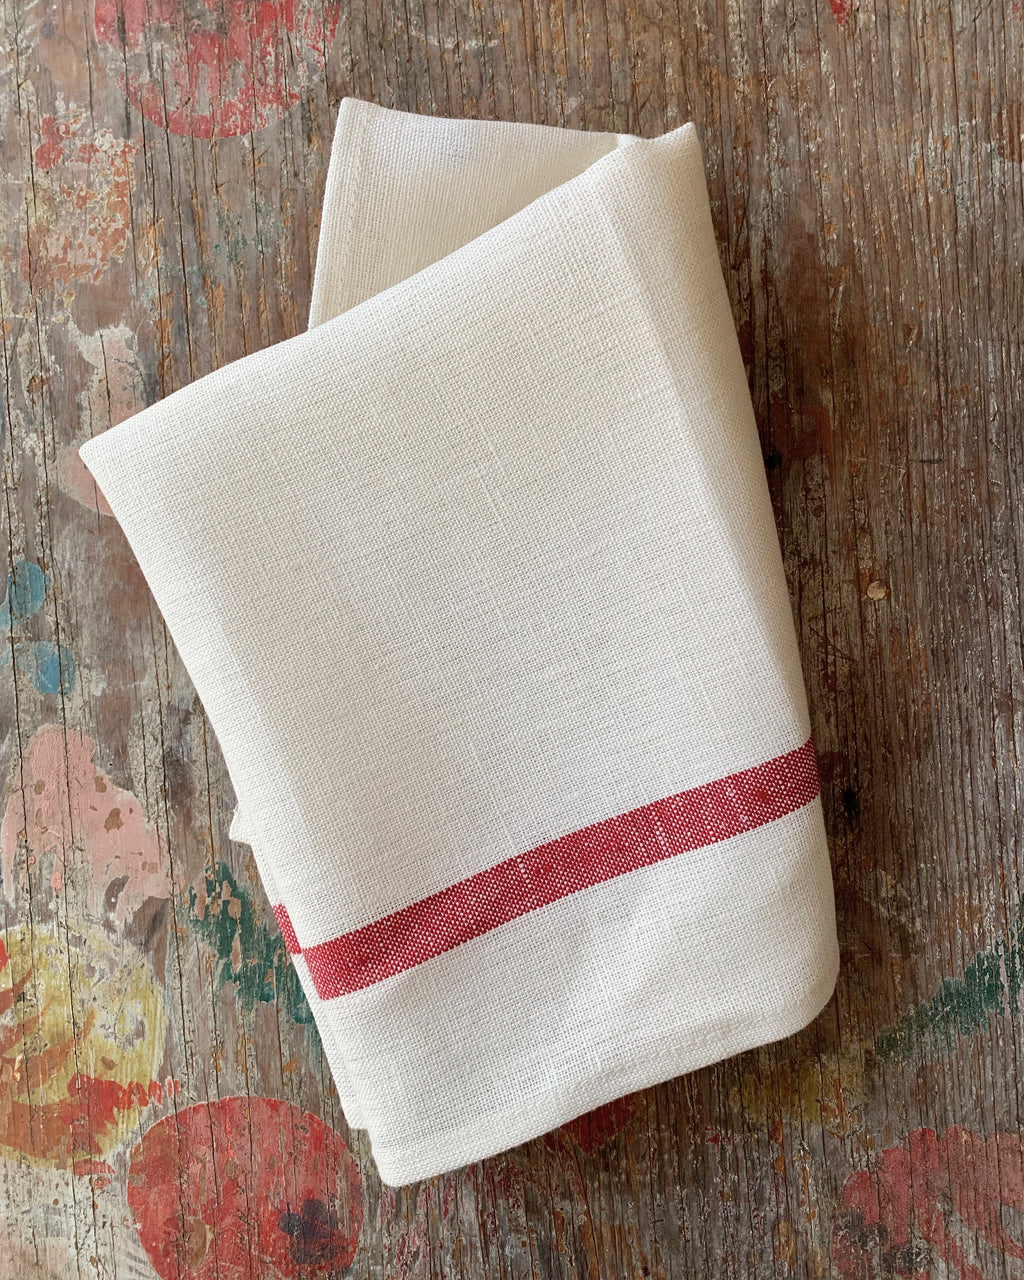 Thick Linen Kitchen Cloth: White with Red Stripe